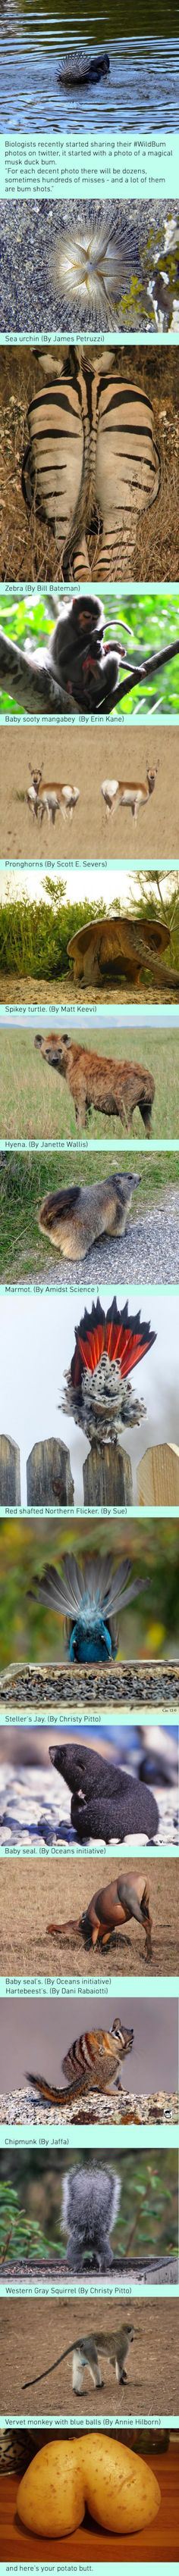 #wildbum - Biologists can't stop sharing fabulous animal booties